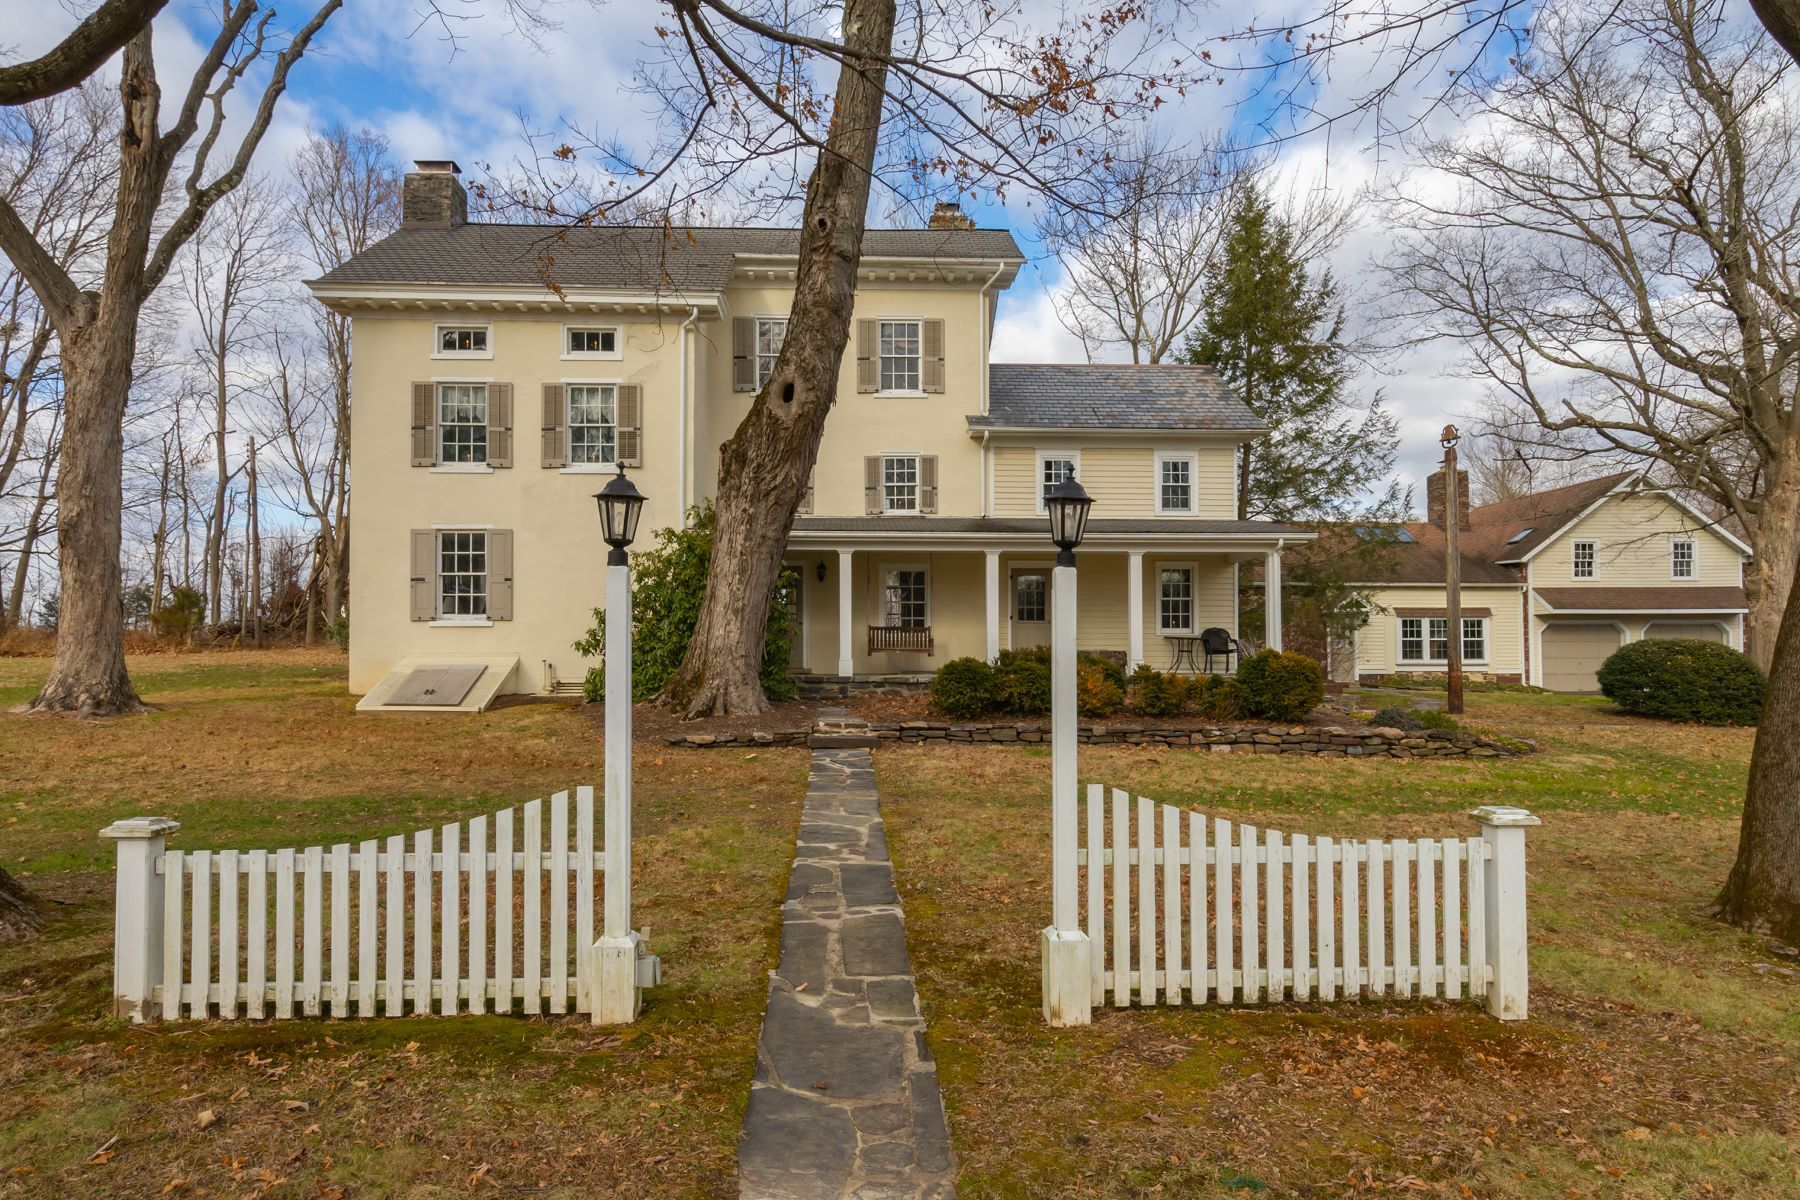 Single Family Homes for Sale at 978 HIGHLAND RD Newtown, Pennsylvania 18940 United States